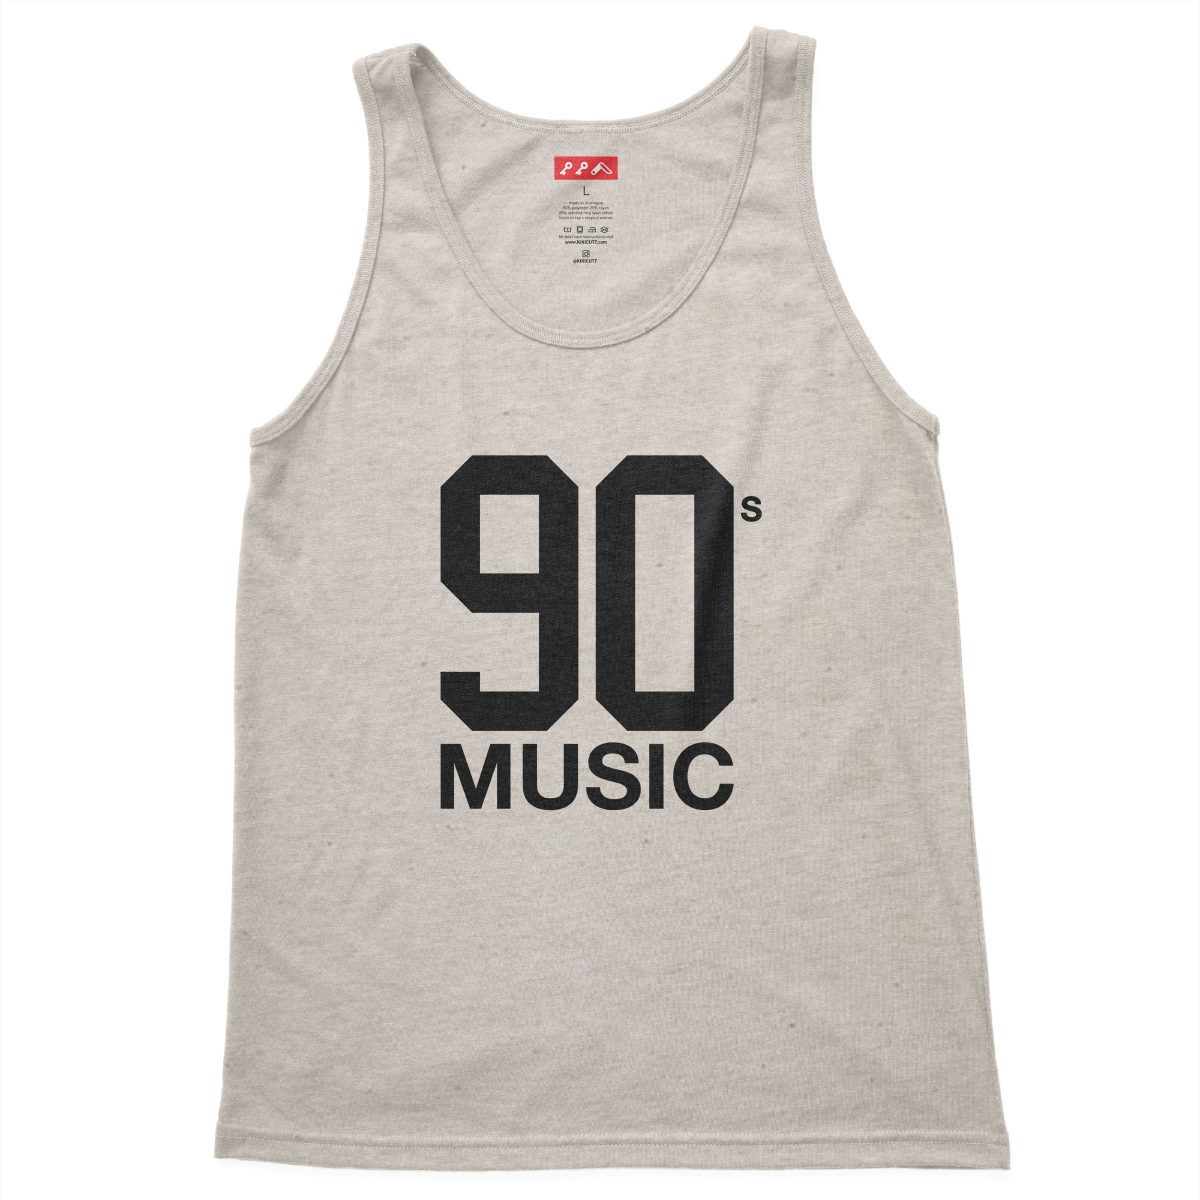 90s MUSIC graphic on a oatmeal triblend tank top at kikicutt.com